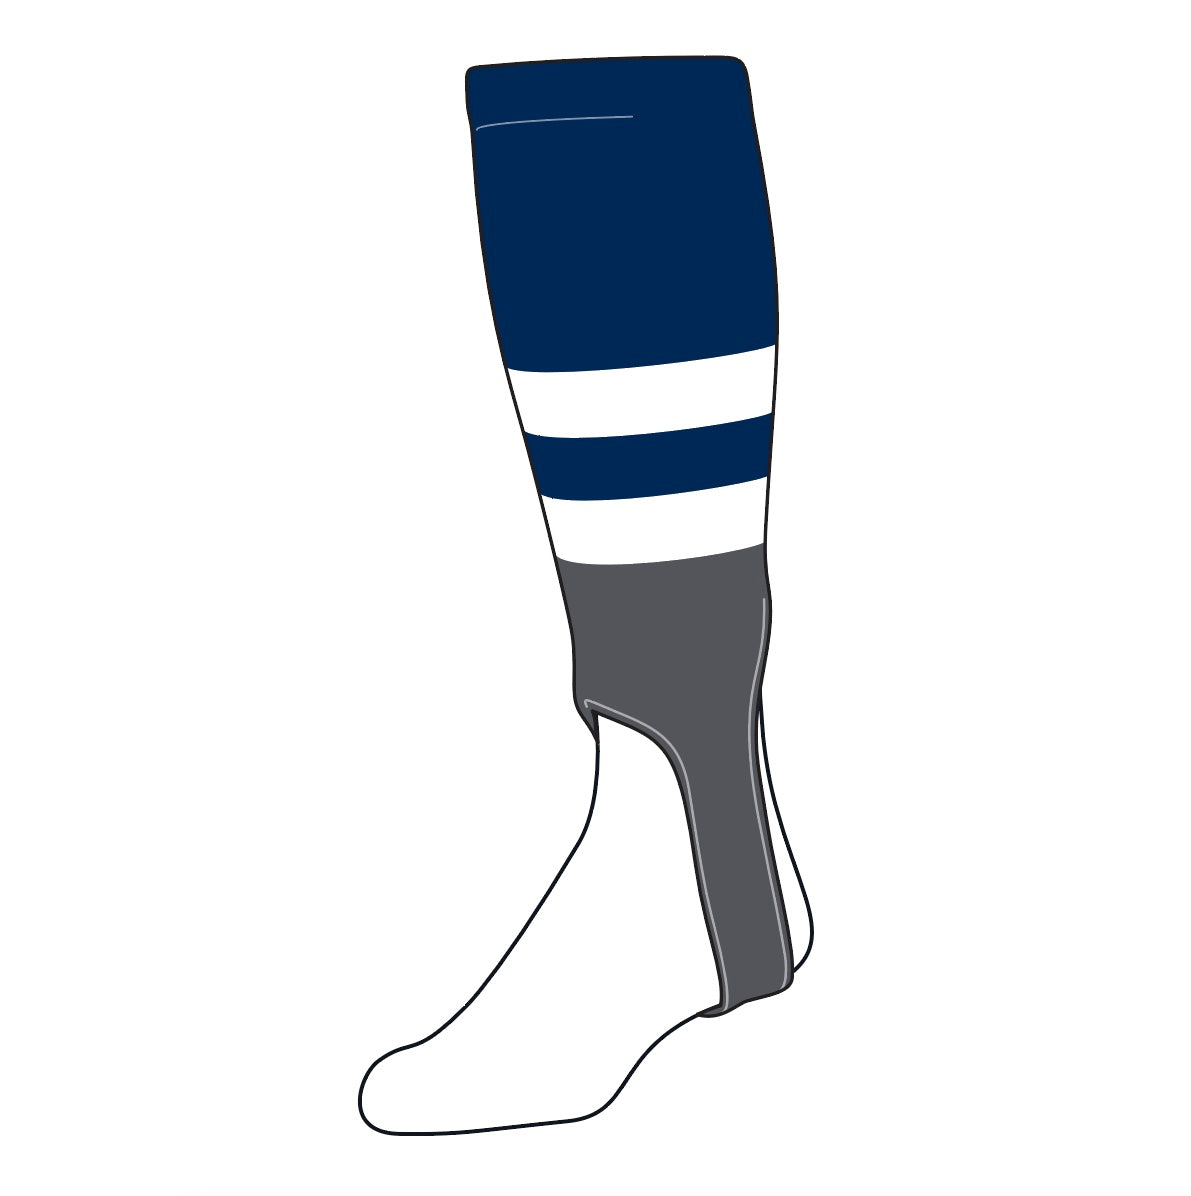 TCK Baseball Stirrups Medium (200G, 5in) Navy, White, Graphite